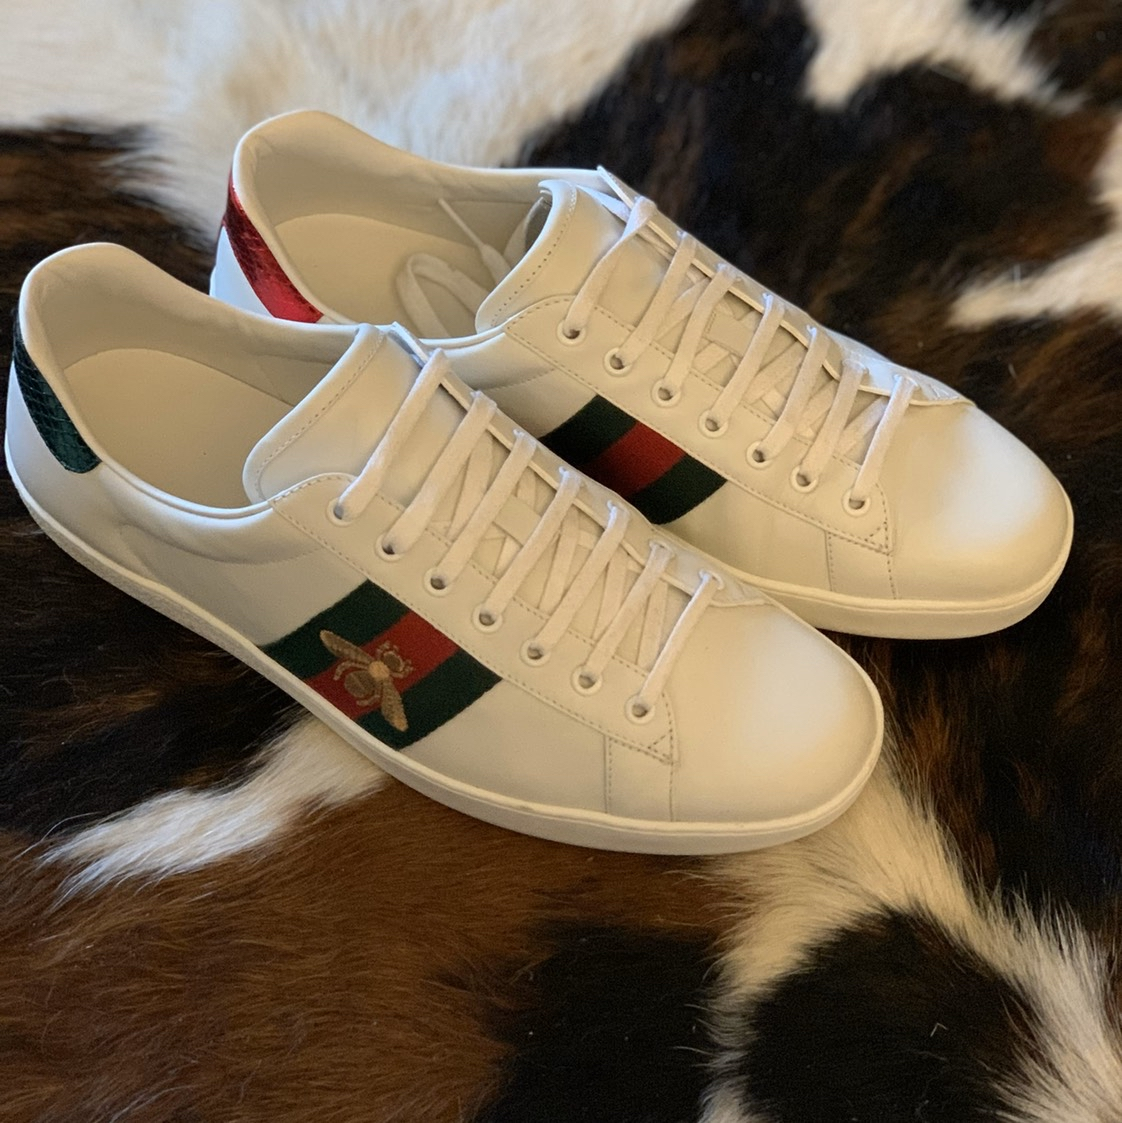 Gucci Ace Embroidered Bee Sneaker Gucci0